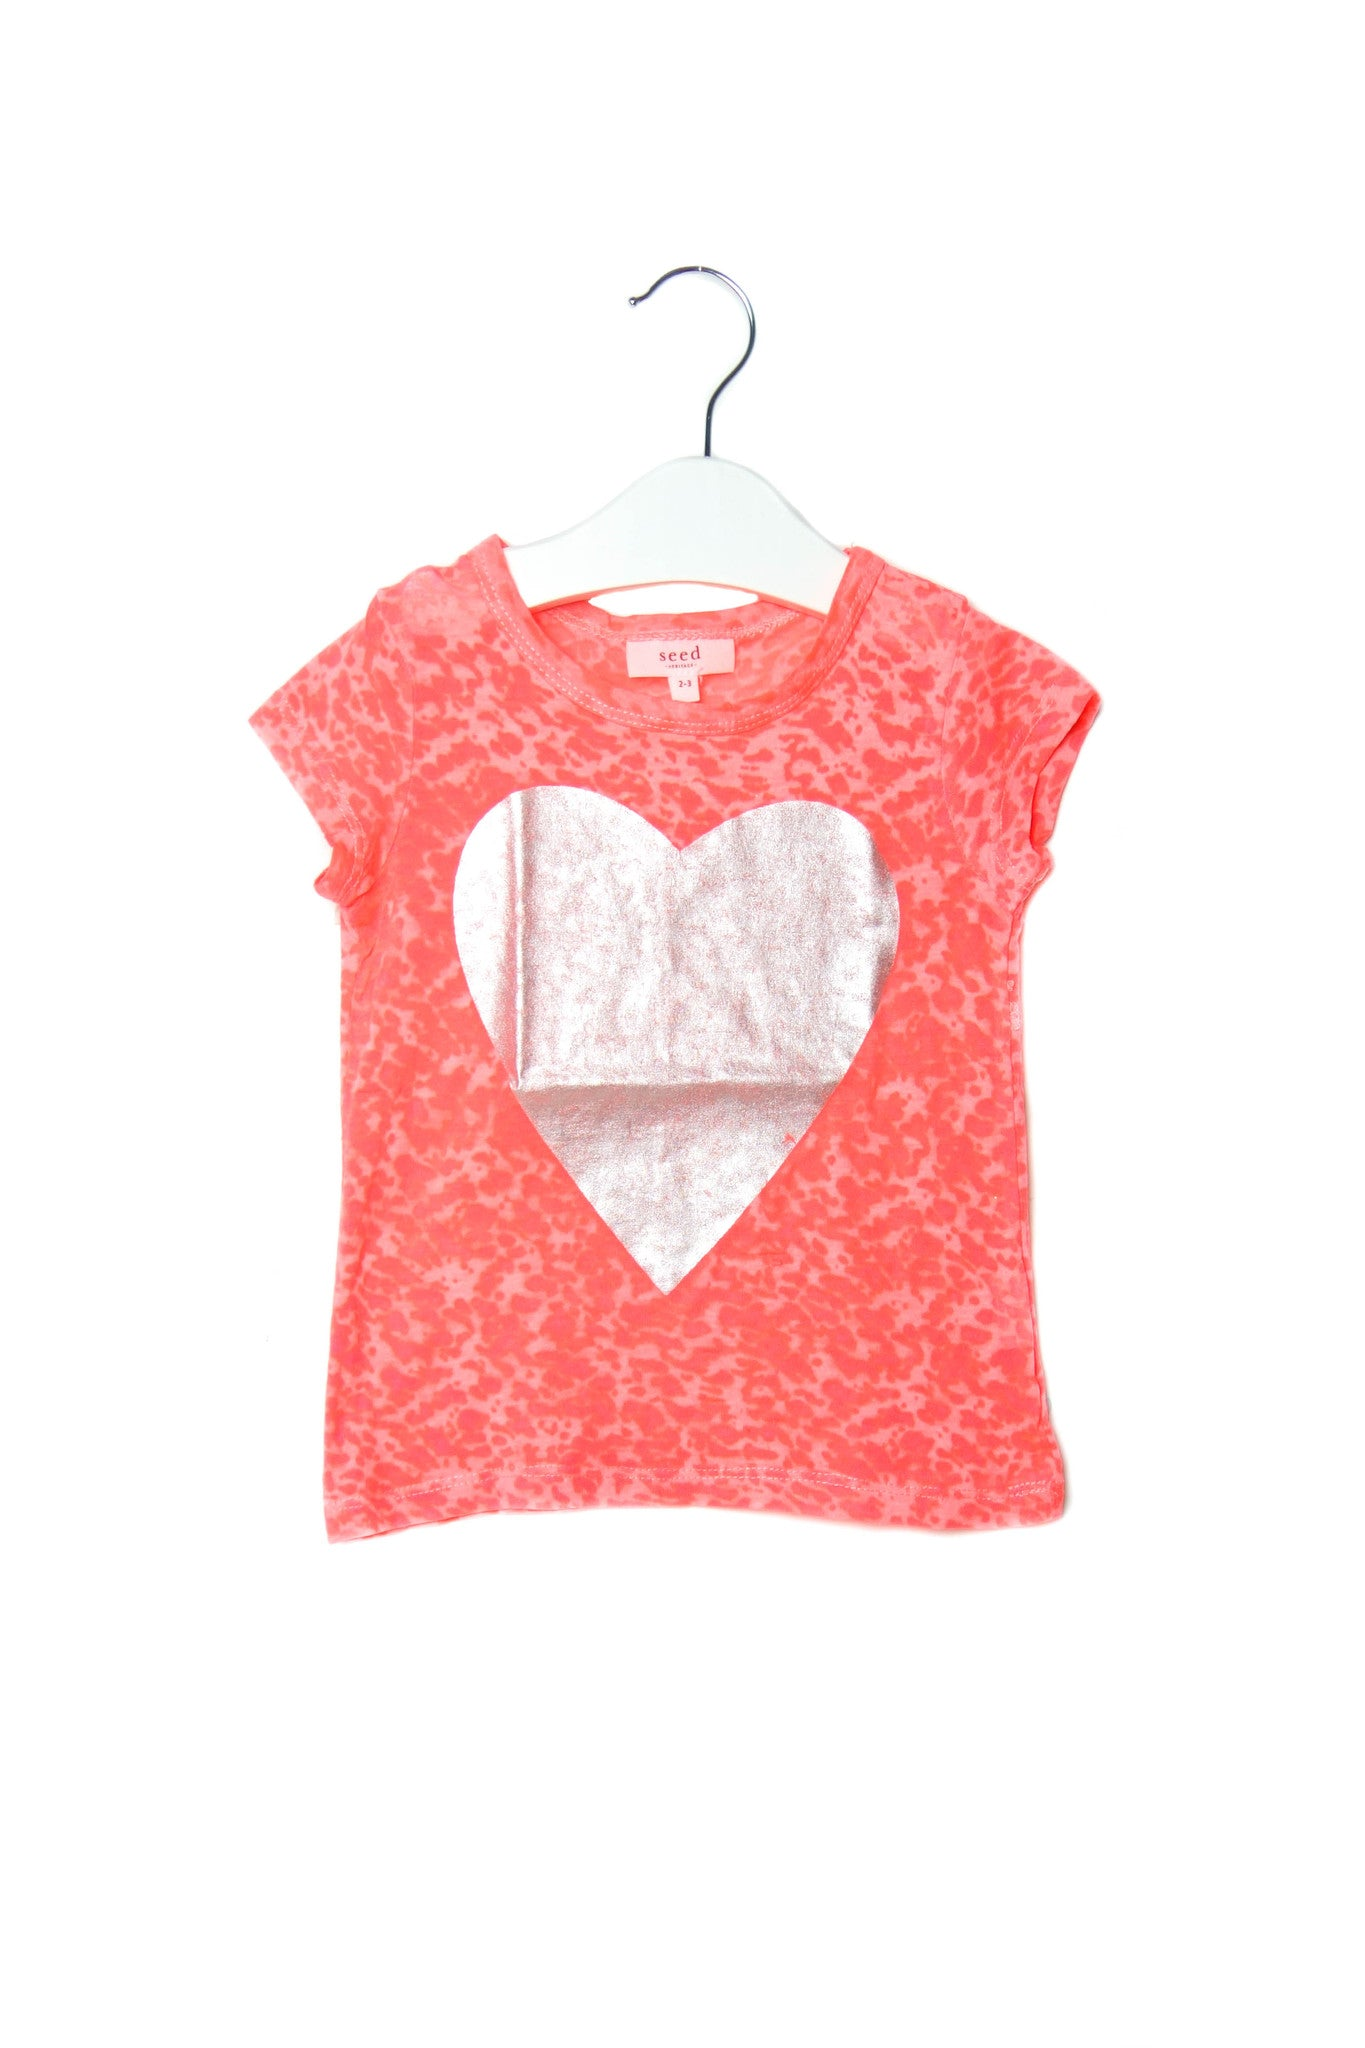 10001410 Seed Kids~T-Shirt 2-3T at Retykle